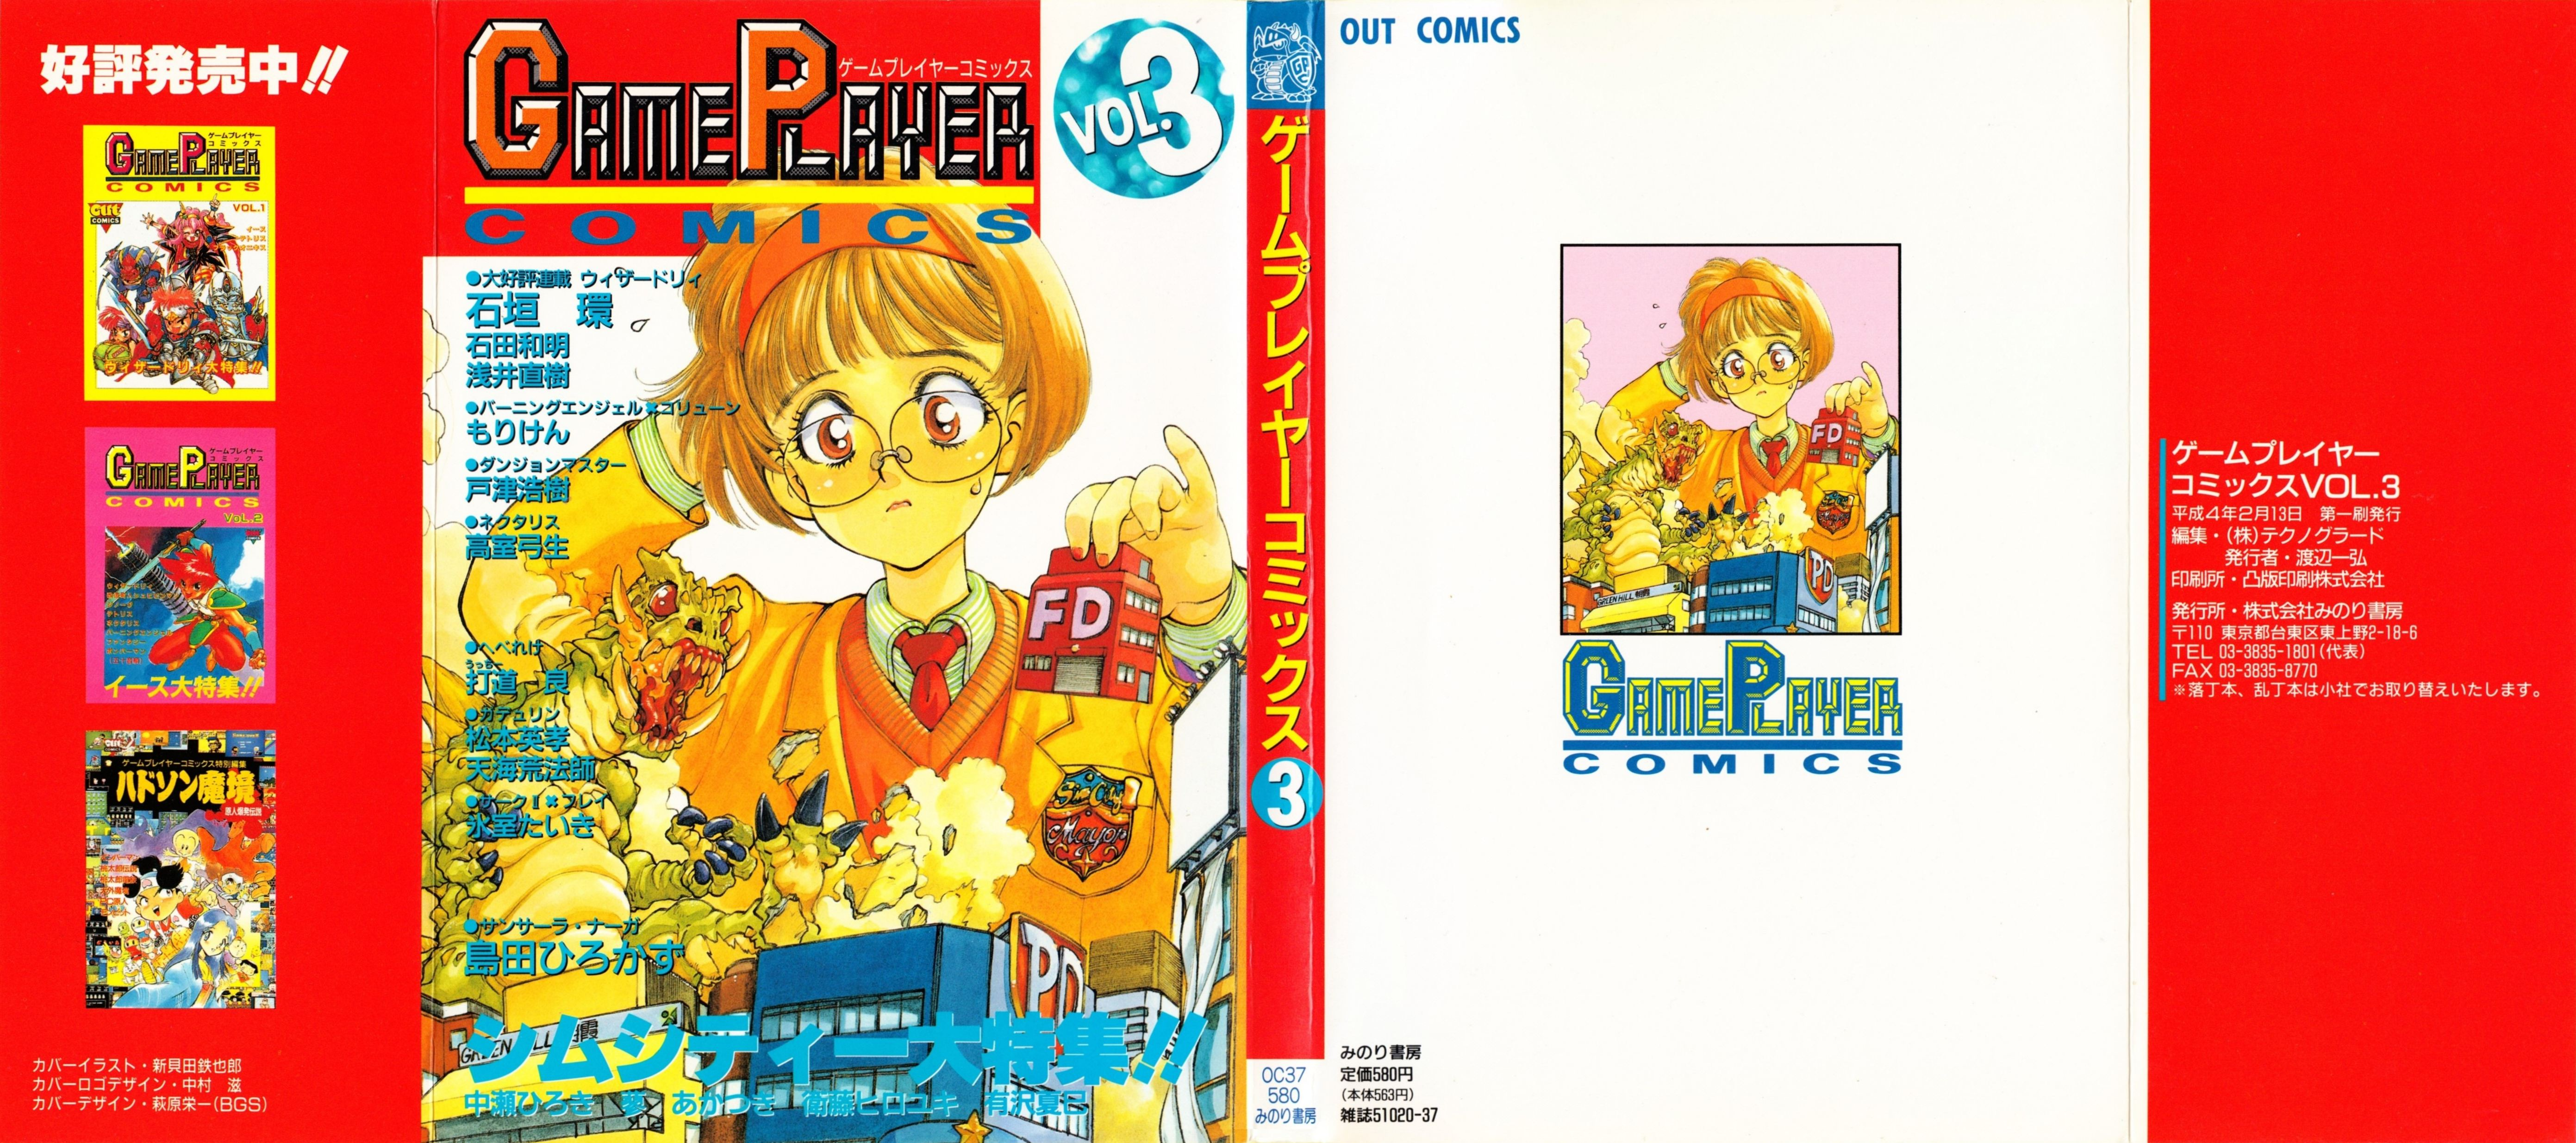 Comic - Game Player Comics Volume 3 - JP - Dust Jacket - Front - Scan